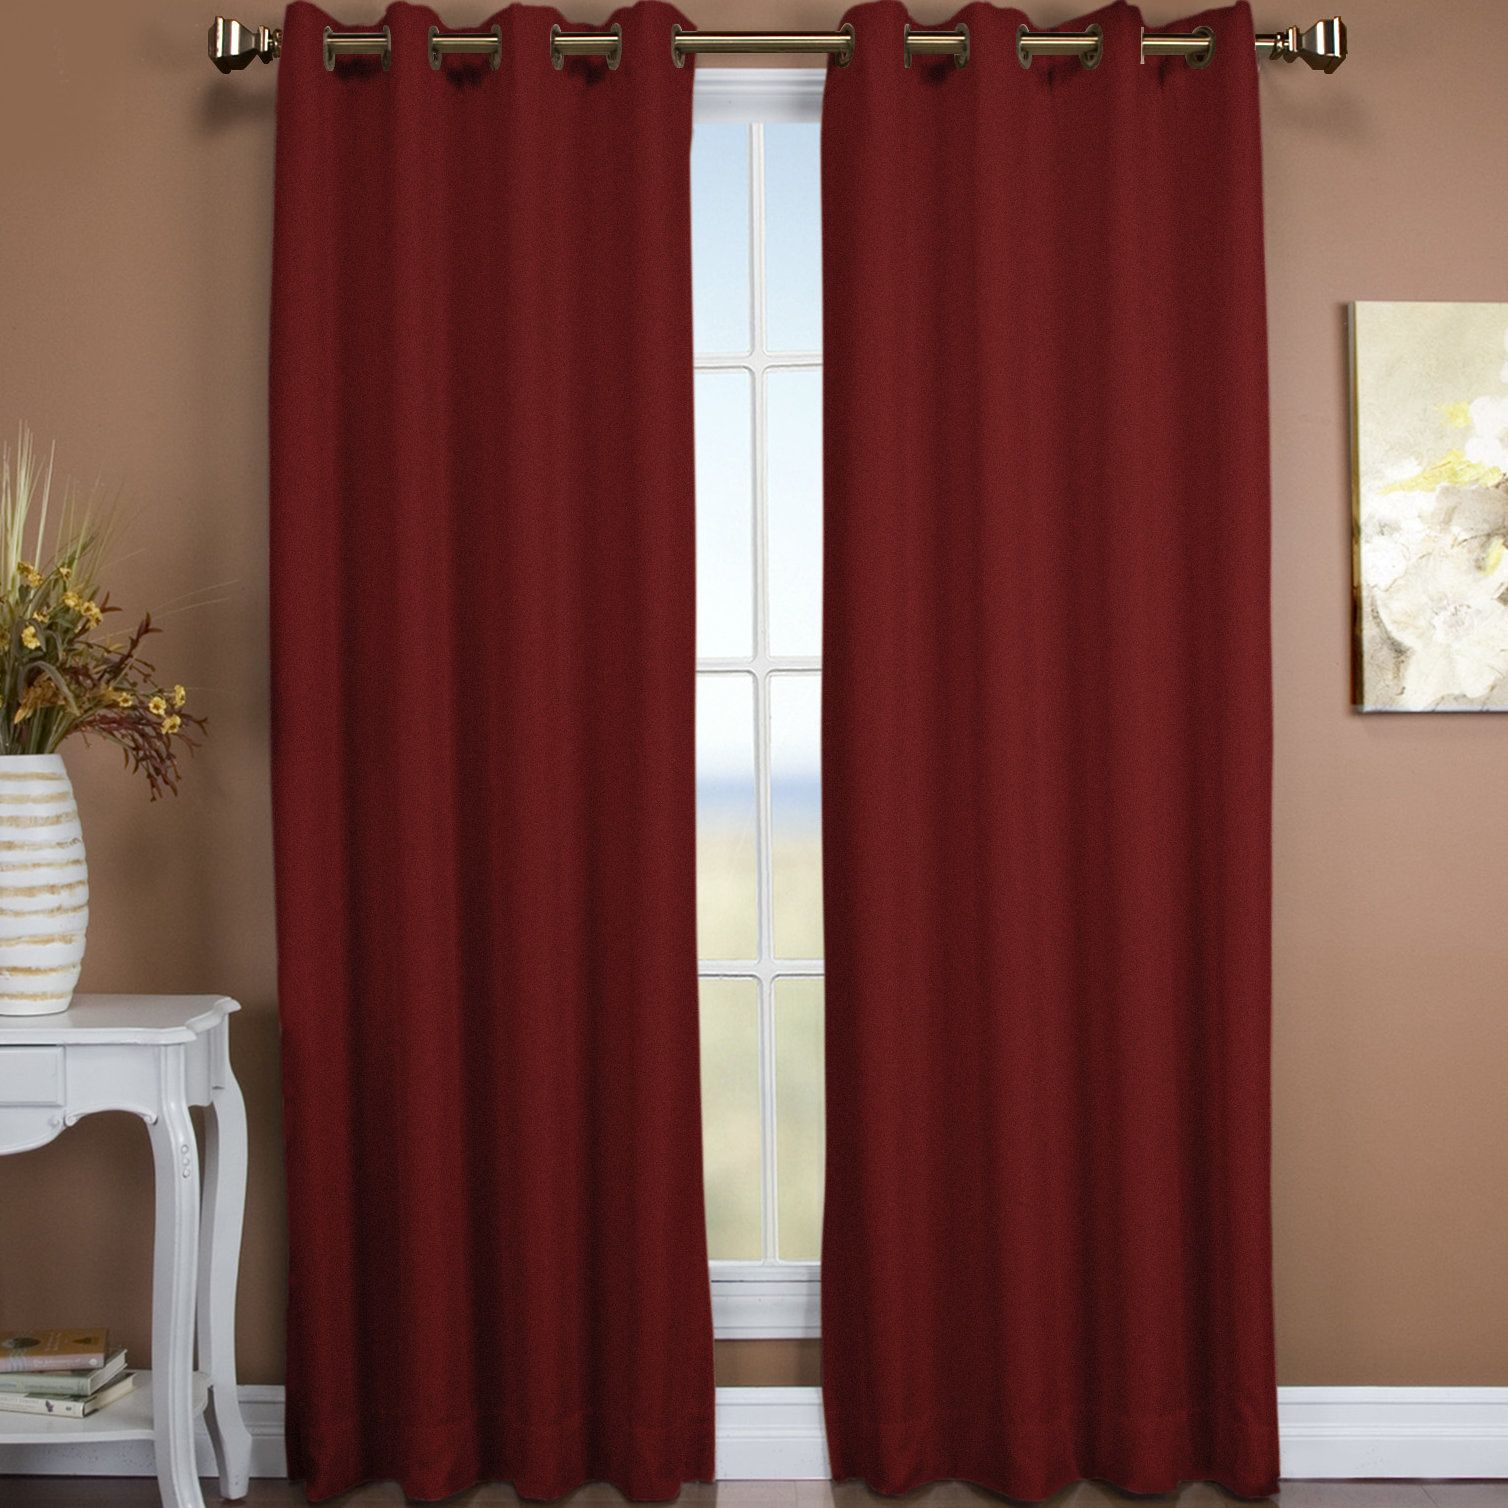 Tacoma Solid Blackout Thermal Single Curtain Panel intended for Tacoma Double-Blackout Grommet Curtain Panels (Image 27 of 30)